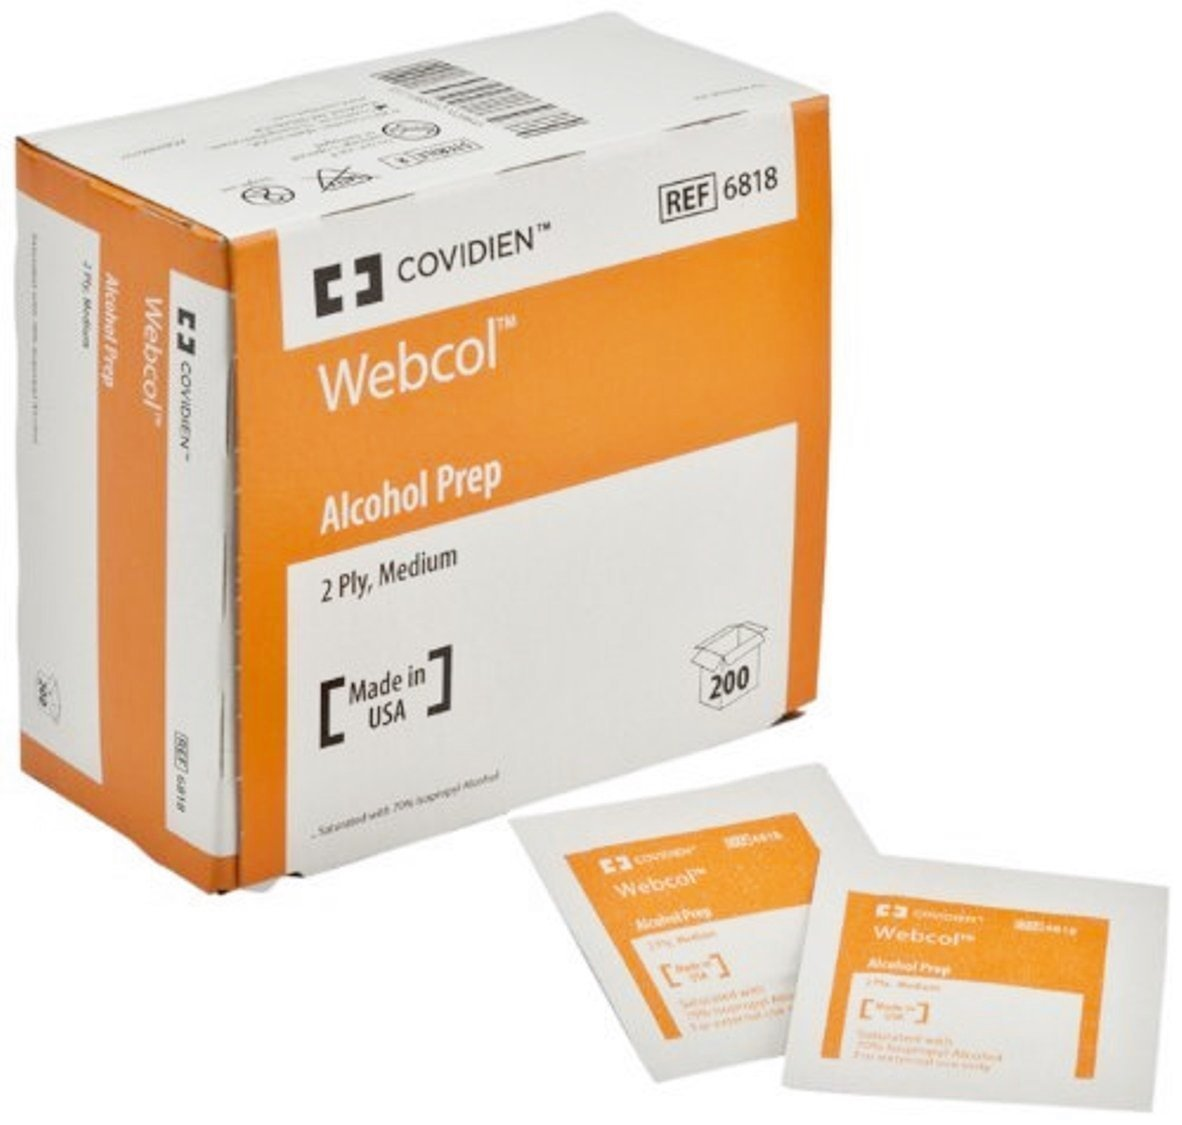 Special Sale - 5 Boxes of 200 - WEBCOL Alcohol Prep Pads KND6818 KENDALLCOVIDIEN MP-